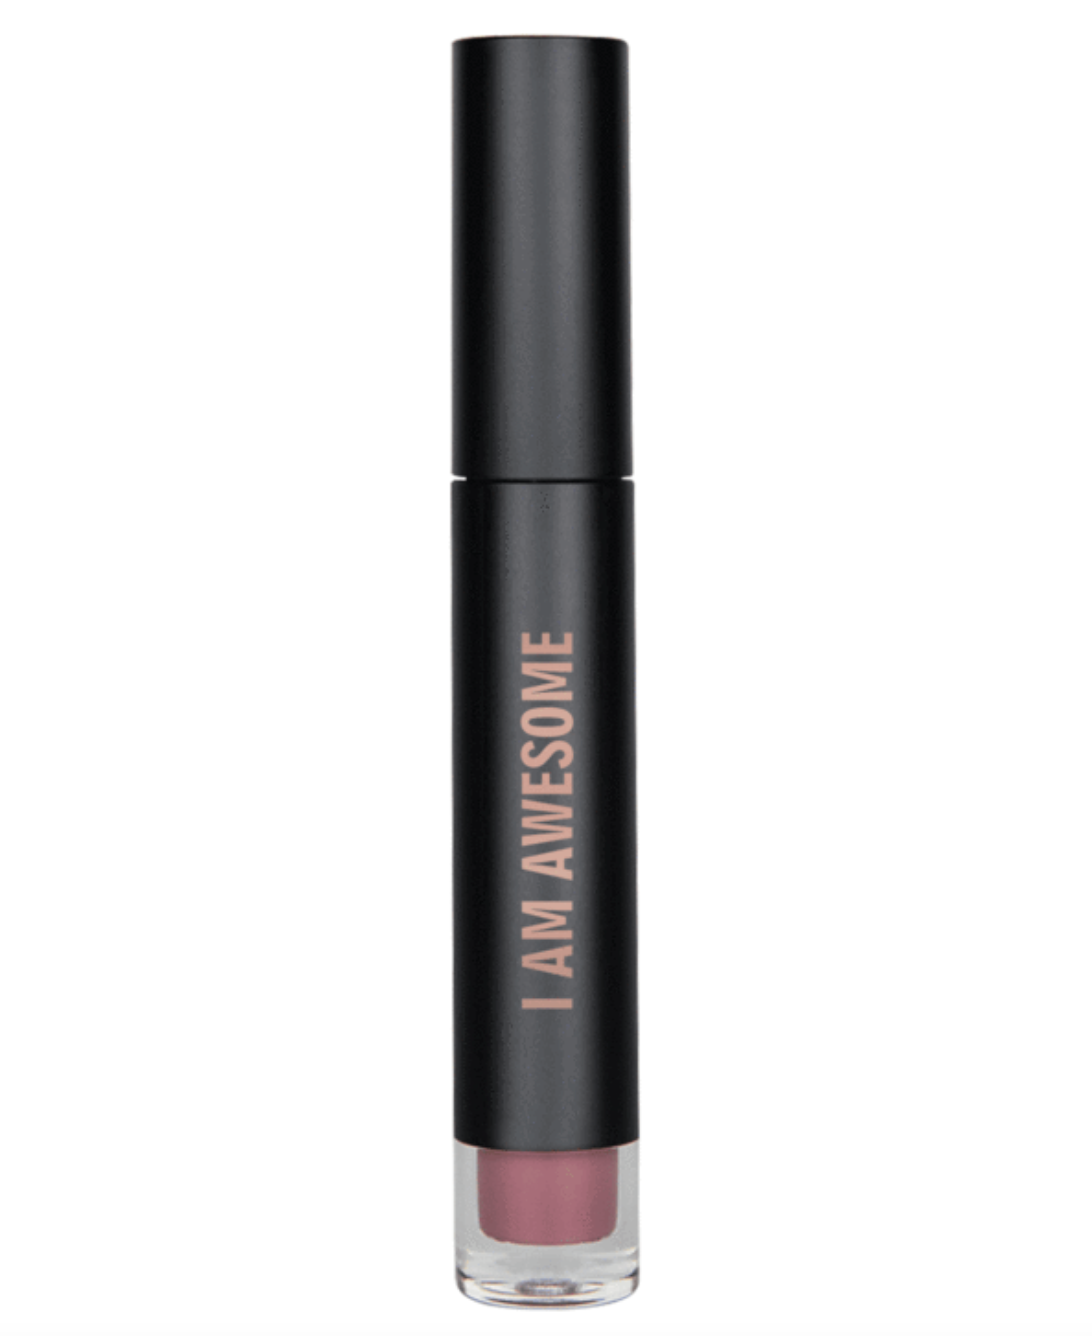 RealHer I Am Awesome Color Rich Lip Gloss